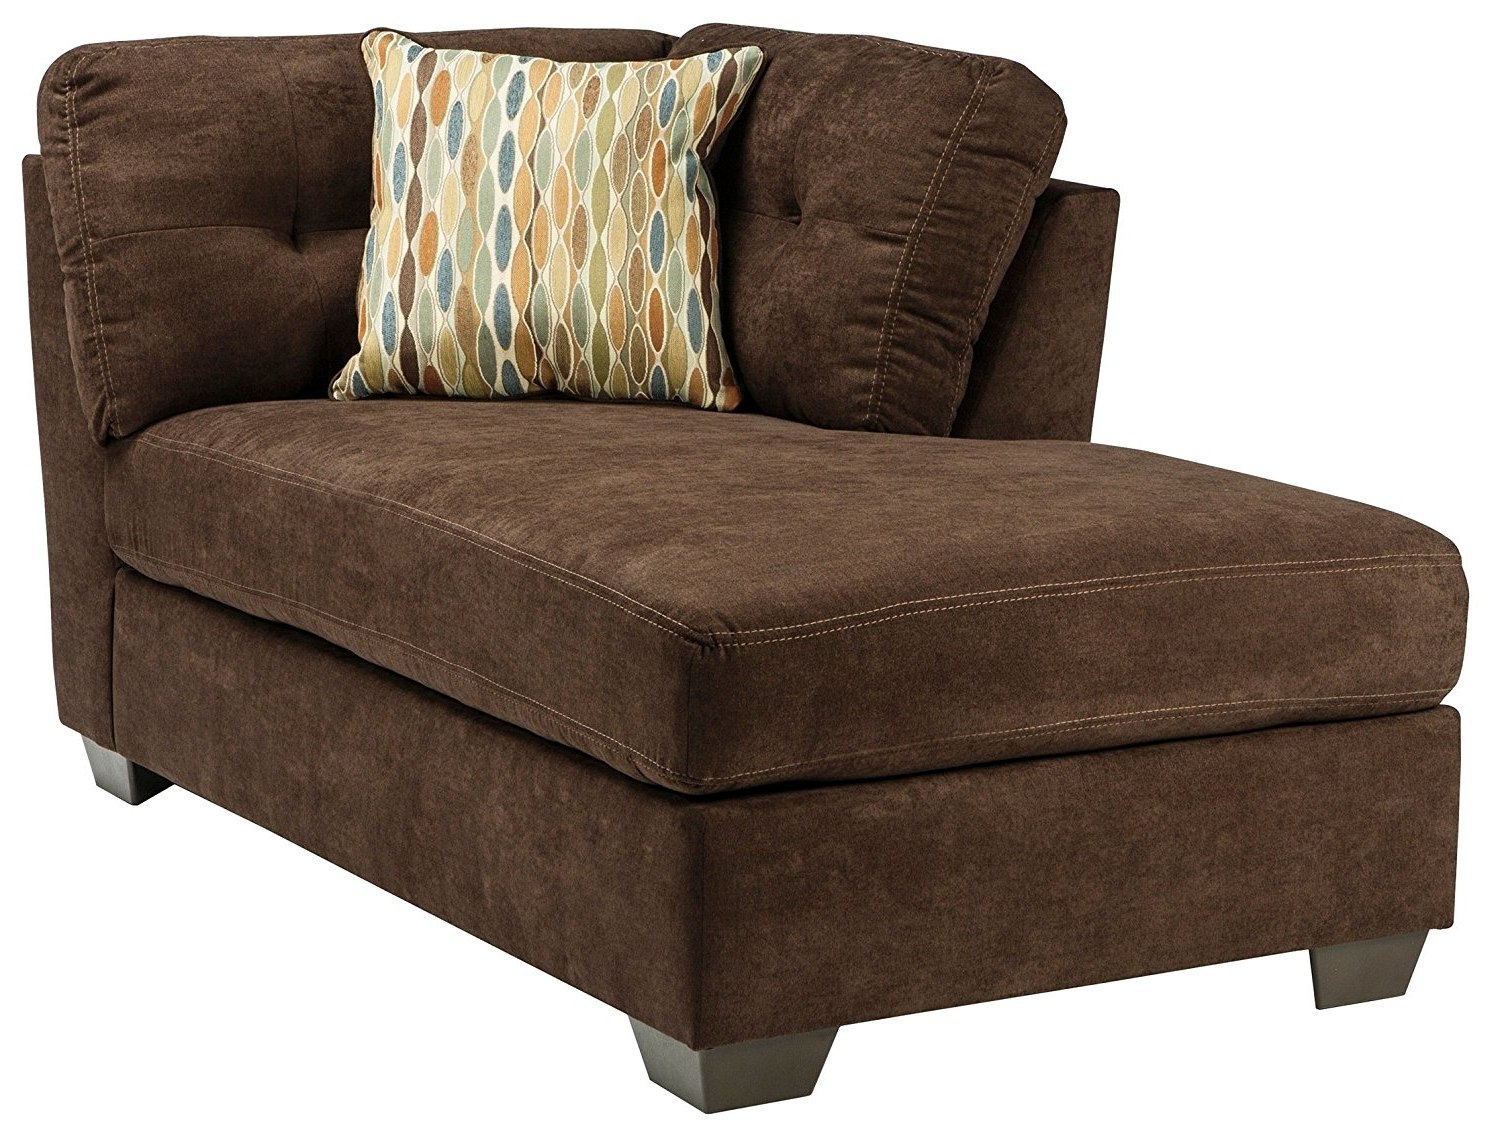 Most Popular Amazon: Ashley Delta City Left Corner Chaise Lounge In Inside Ashley Chaise Lounges (View 10 of 15)